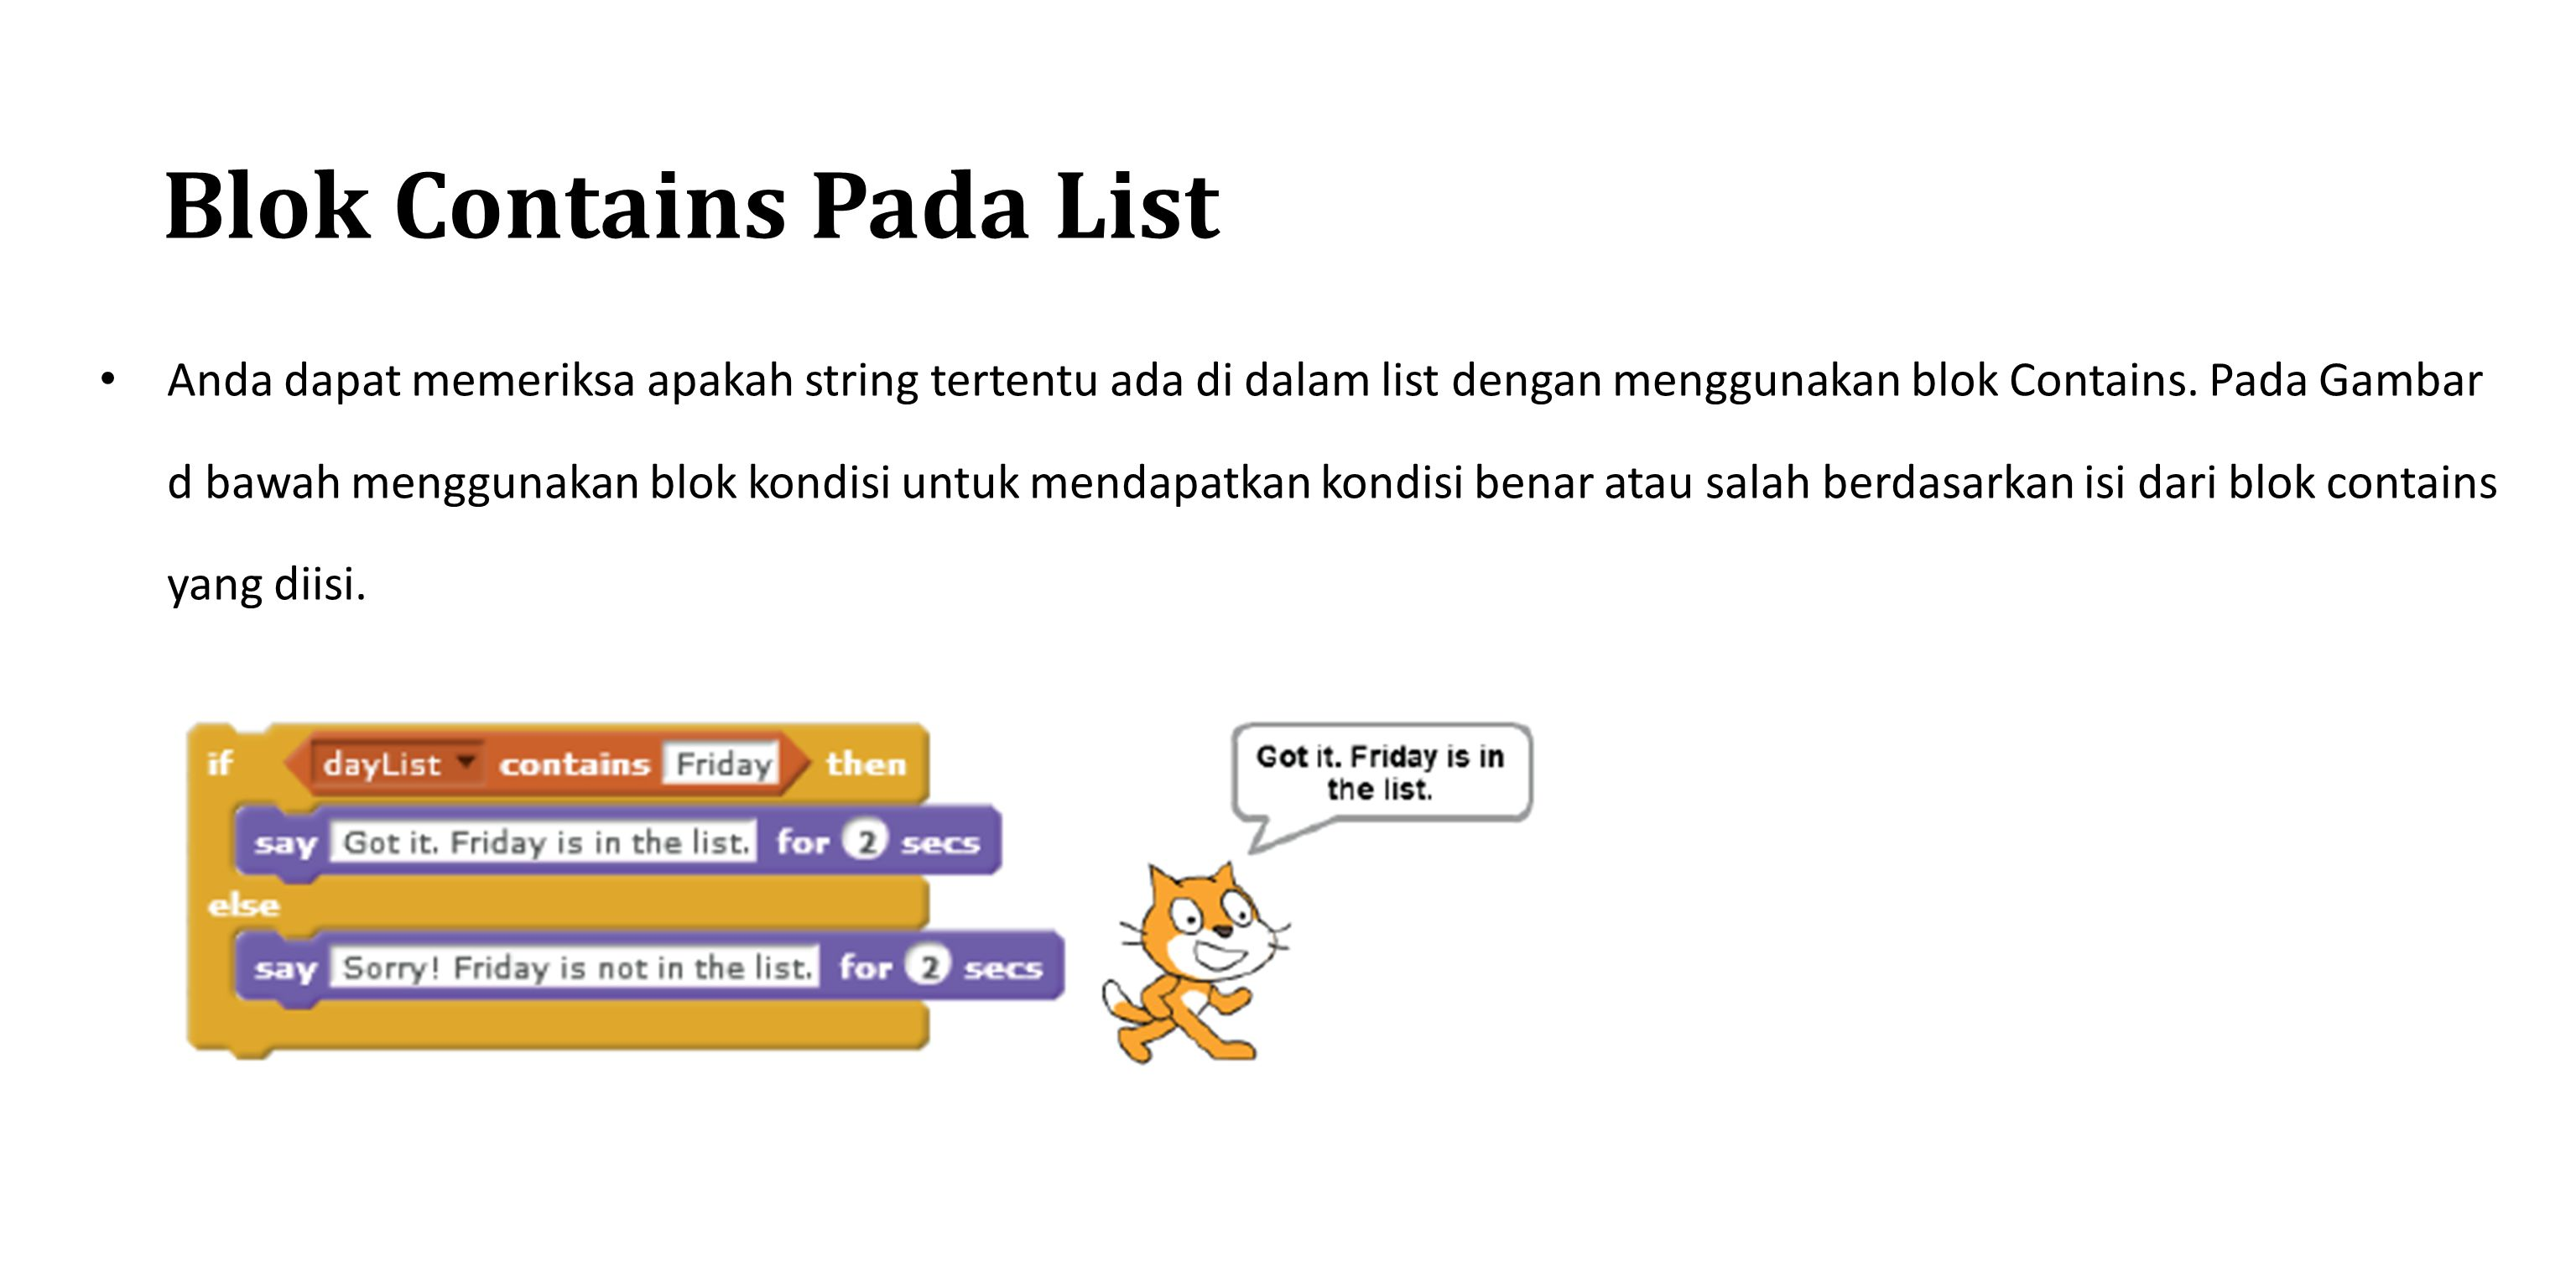 Blok Contains Pada List